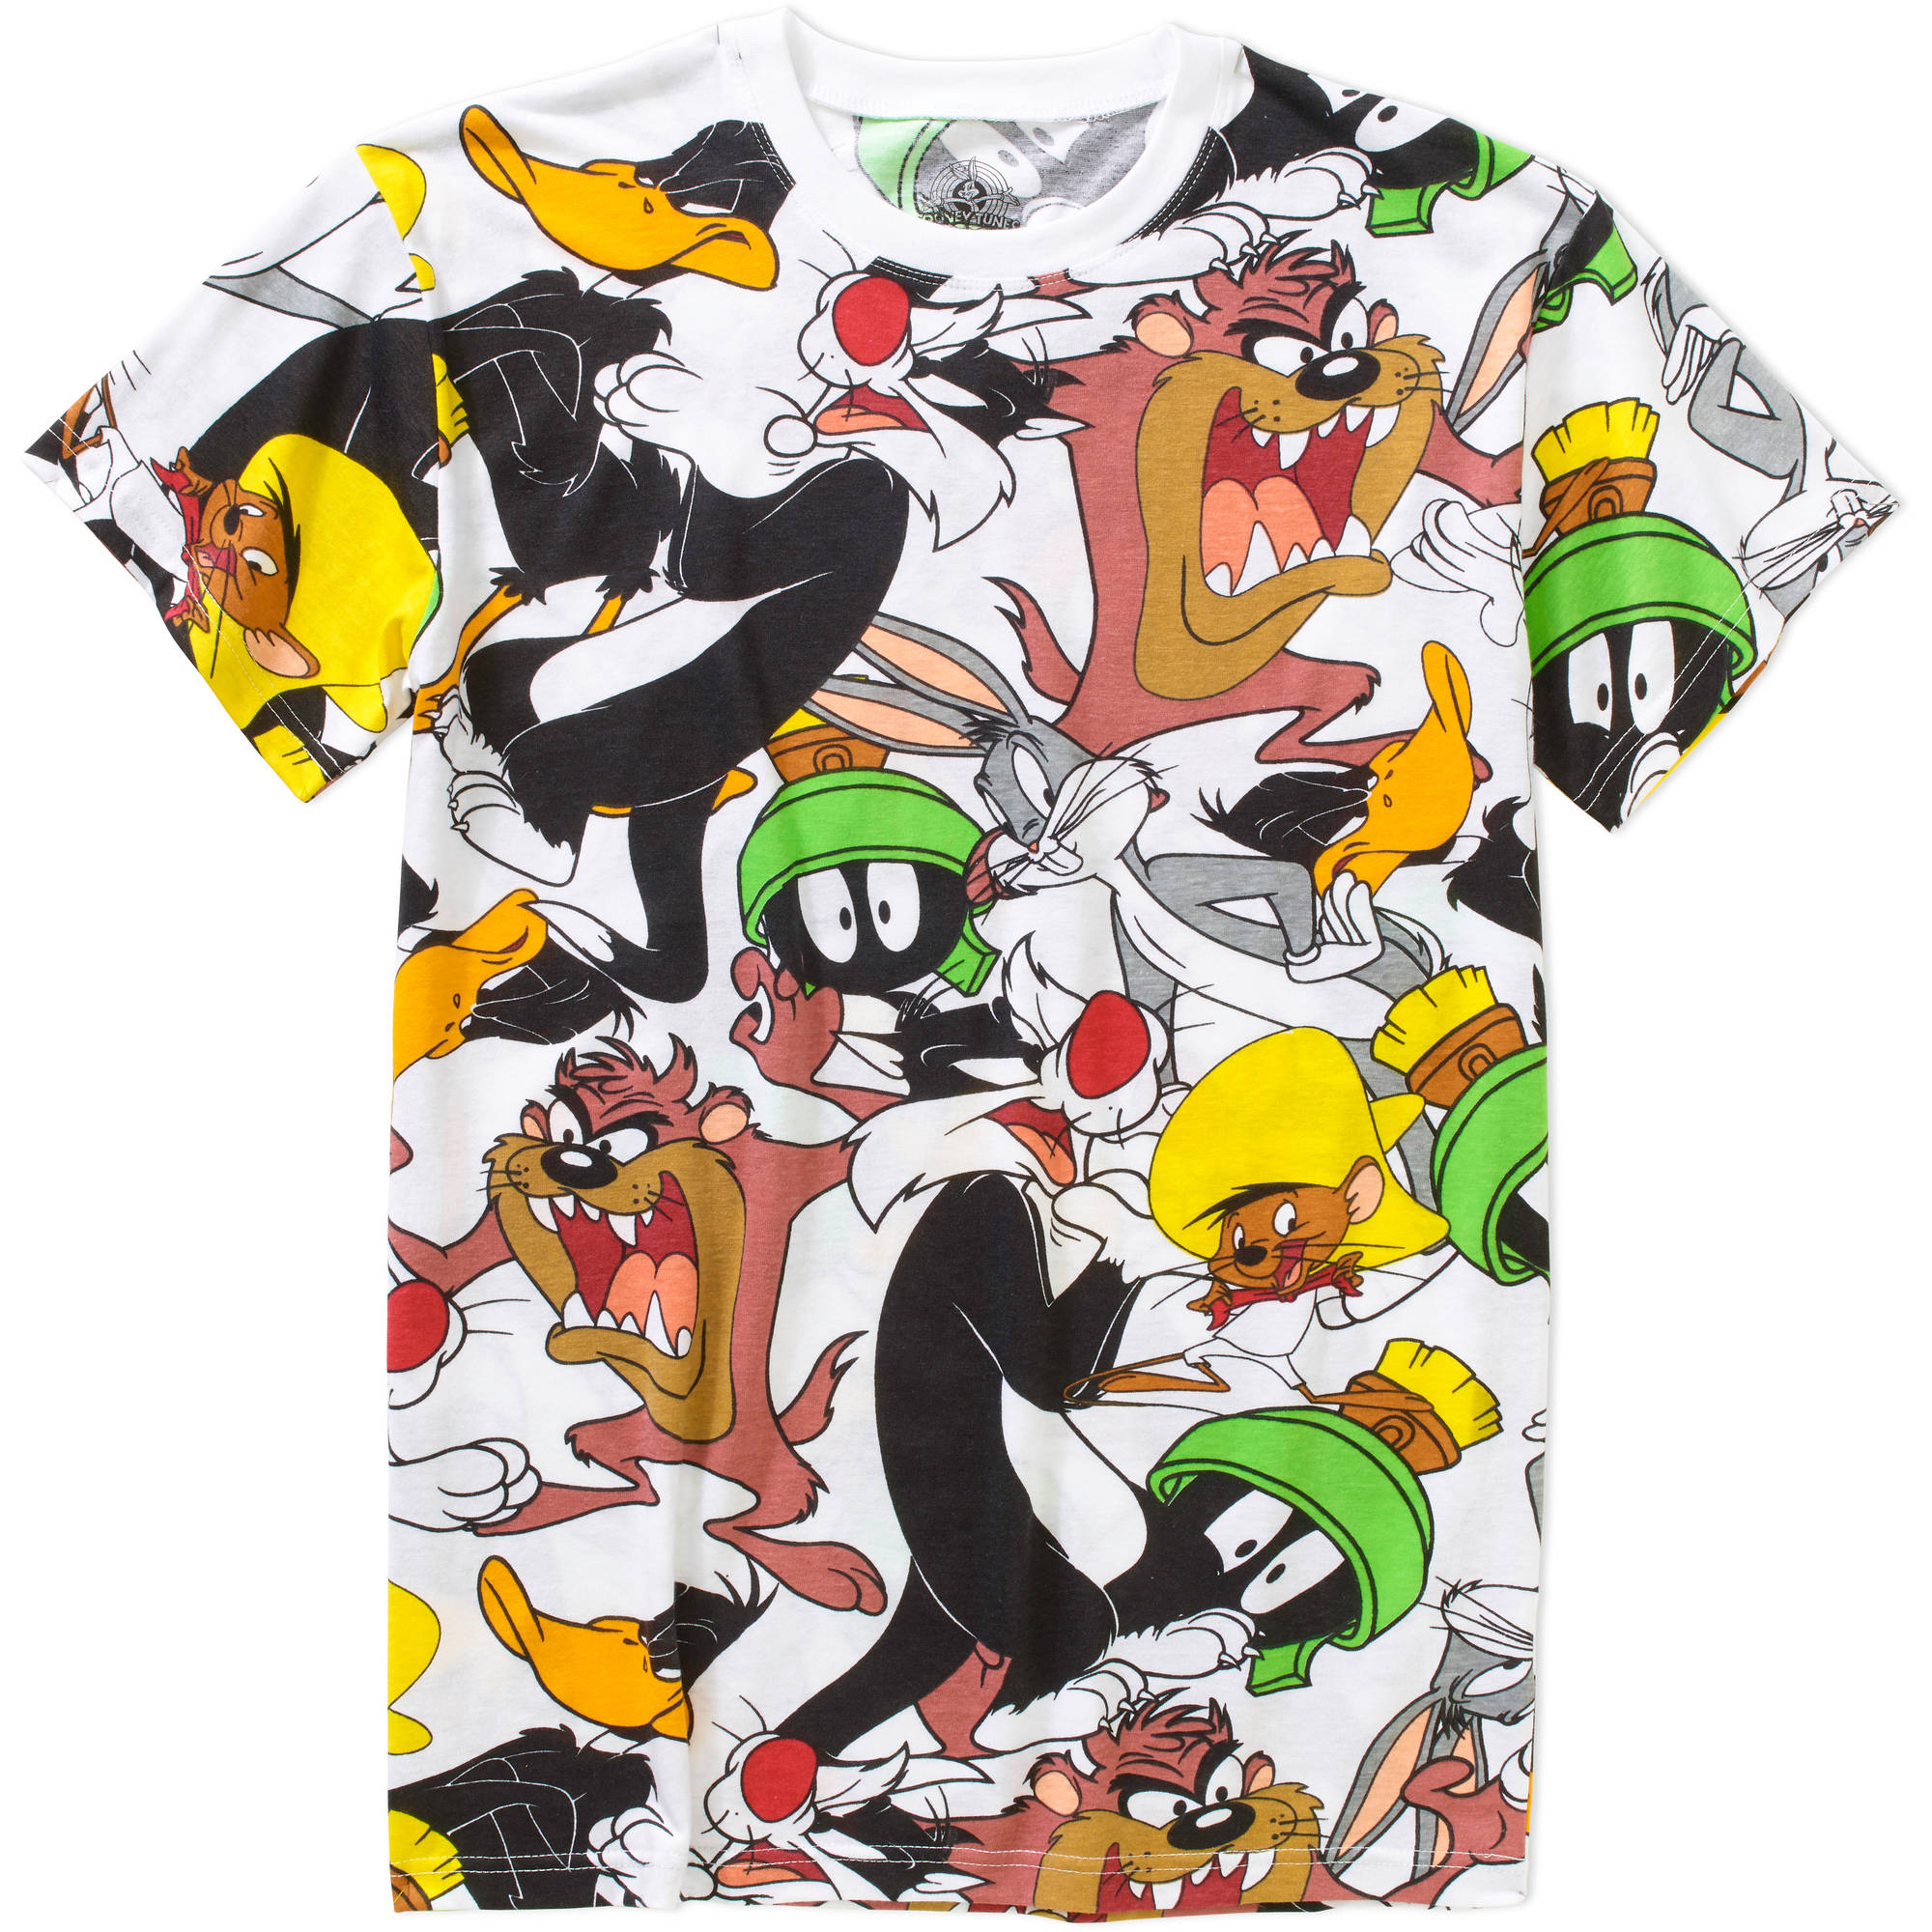 Looney Tunes Characters All Over Printed Big Men's Graphic Tee, 2XL